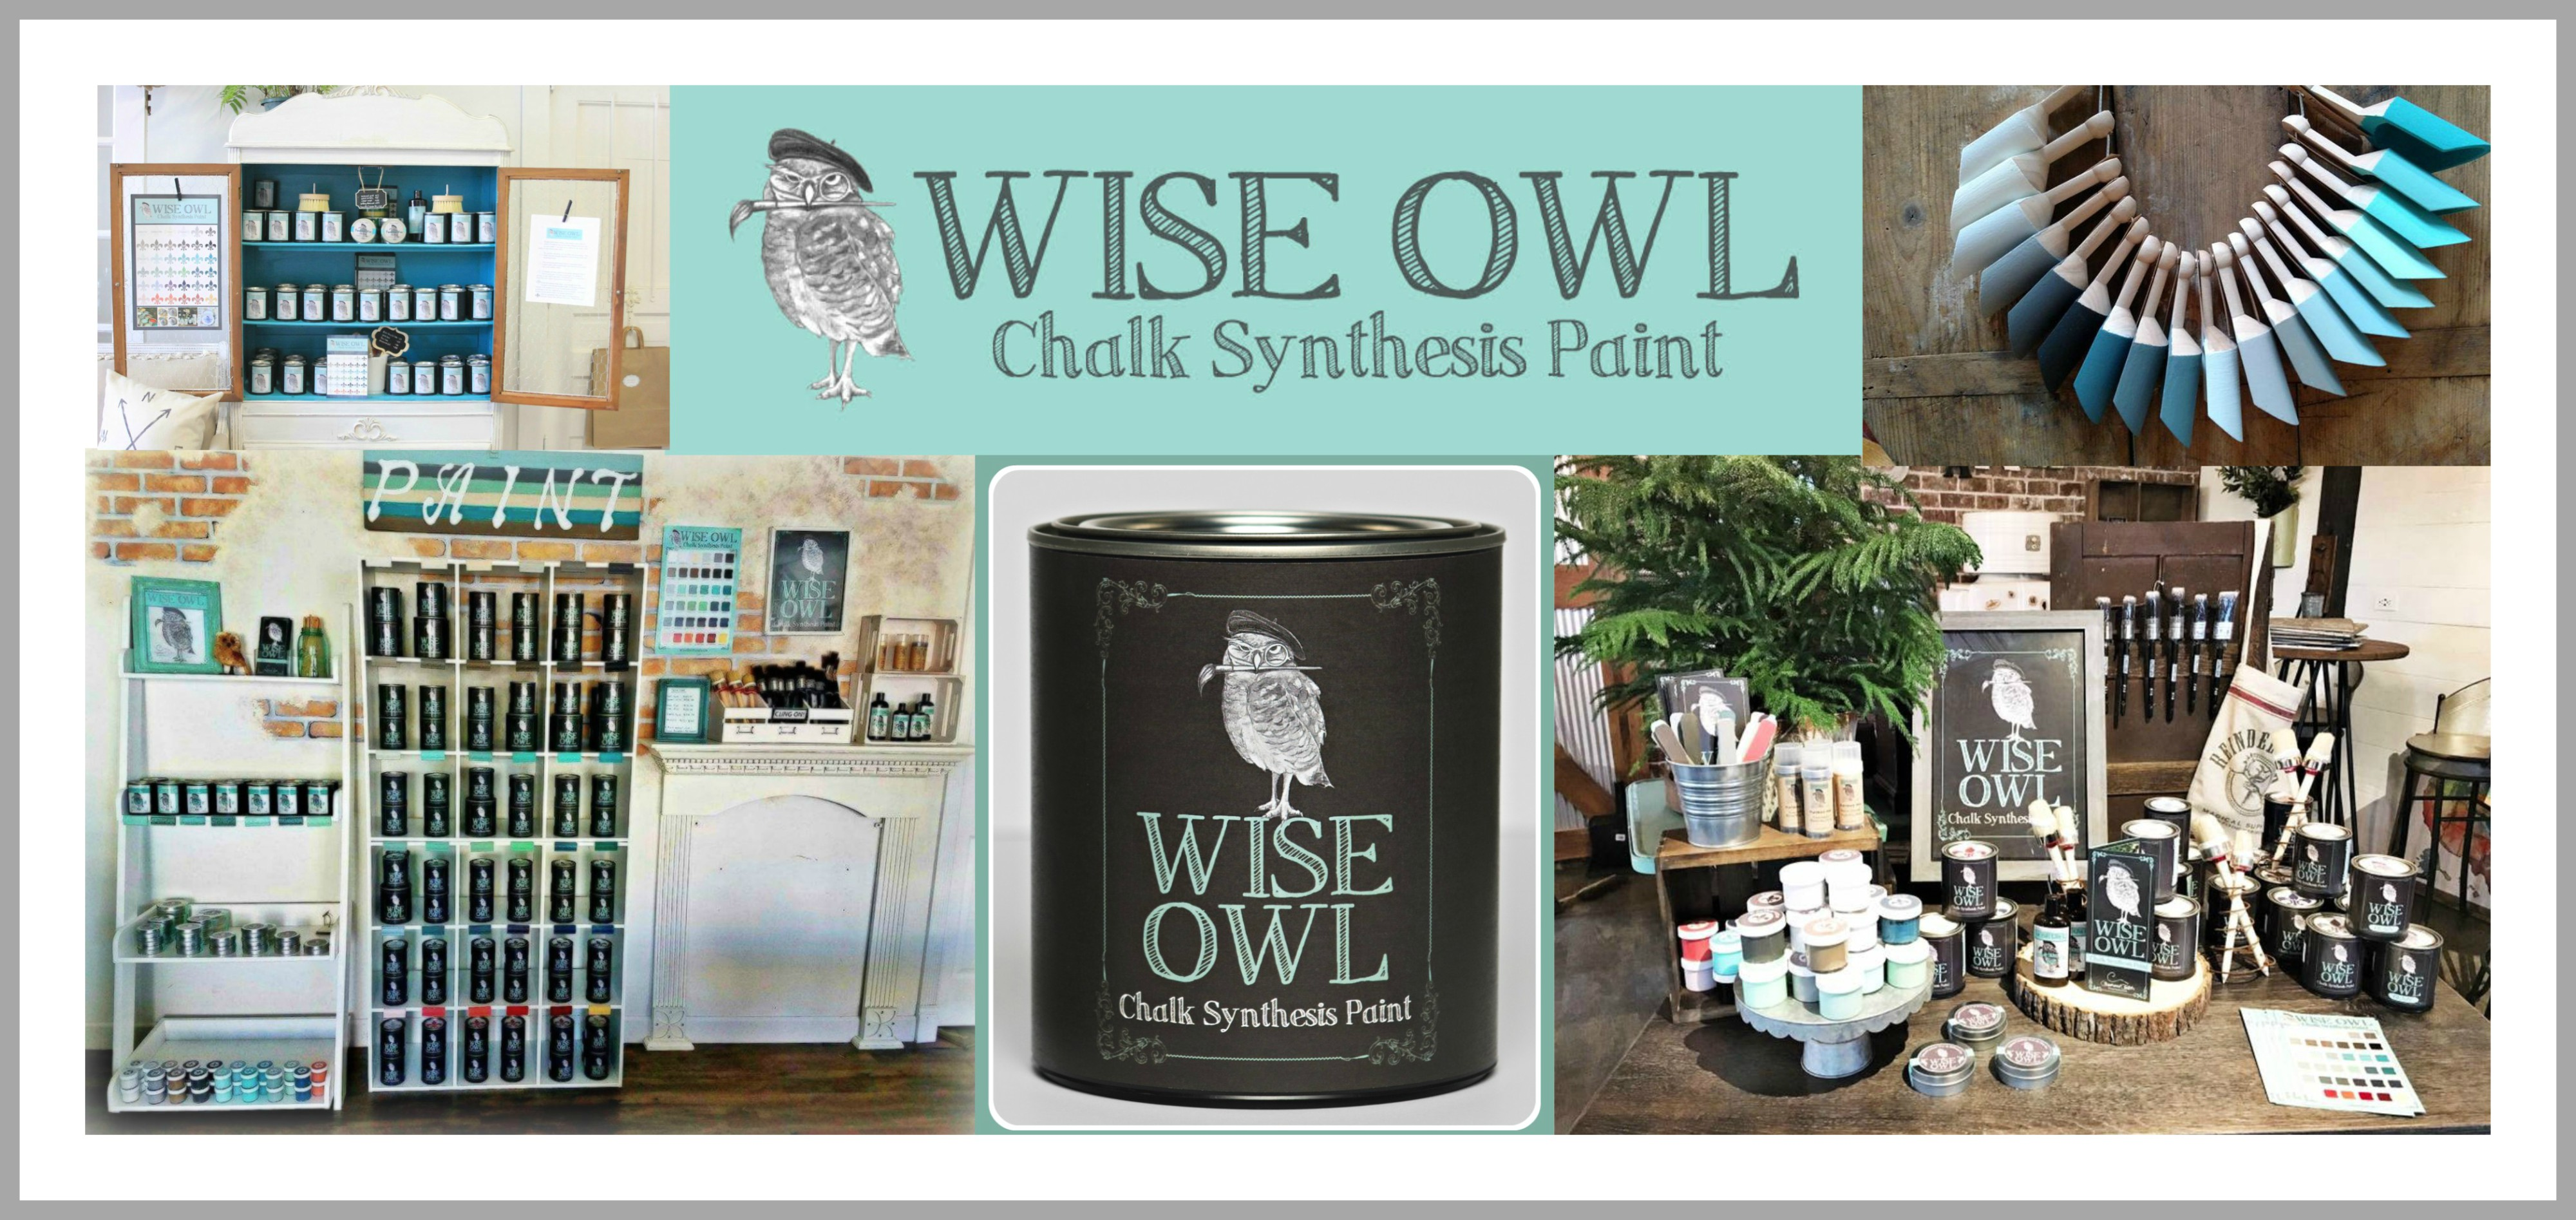 Vendor Opportunities - Become a Wise Owl Retailer